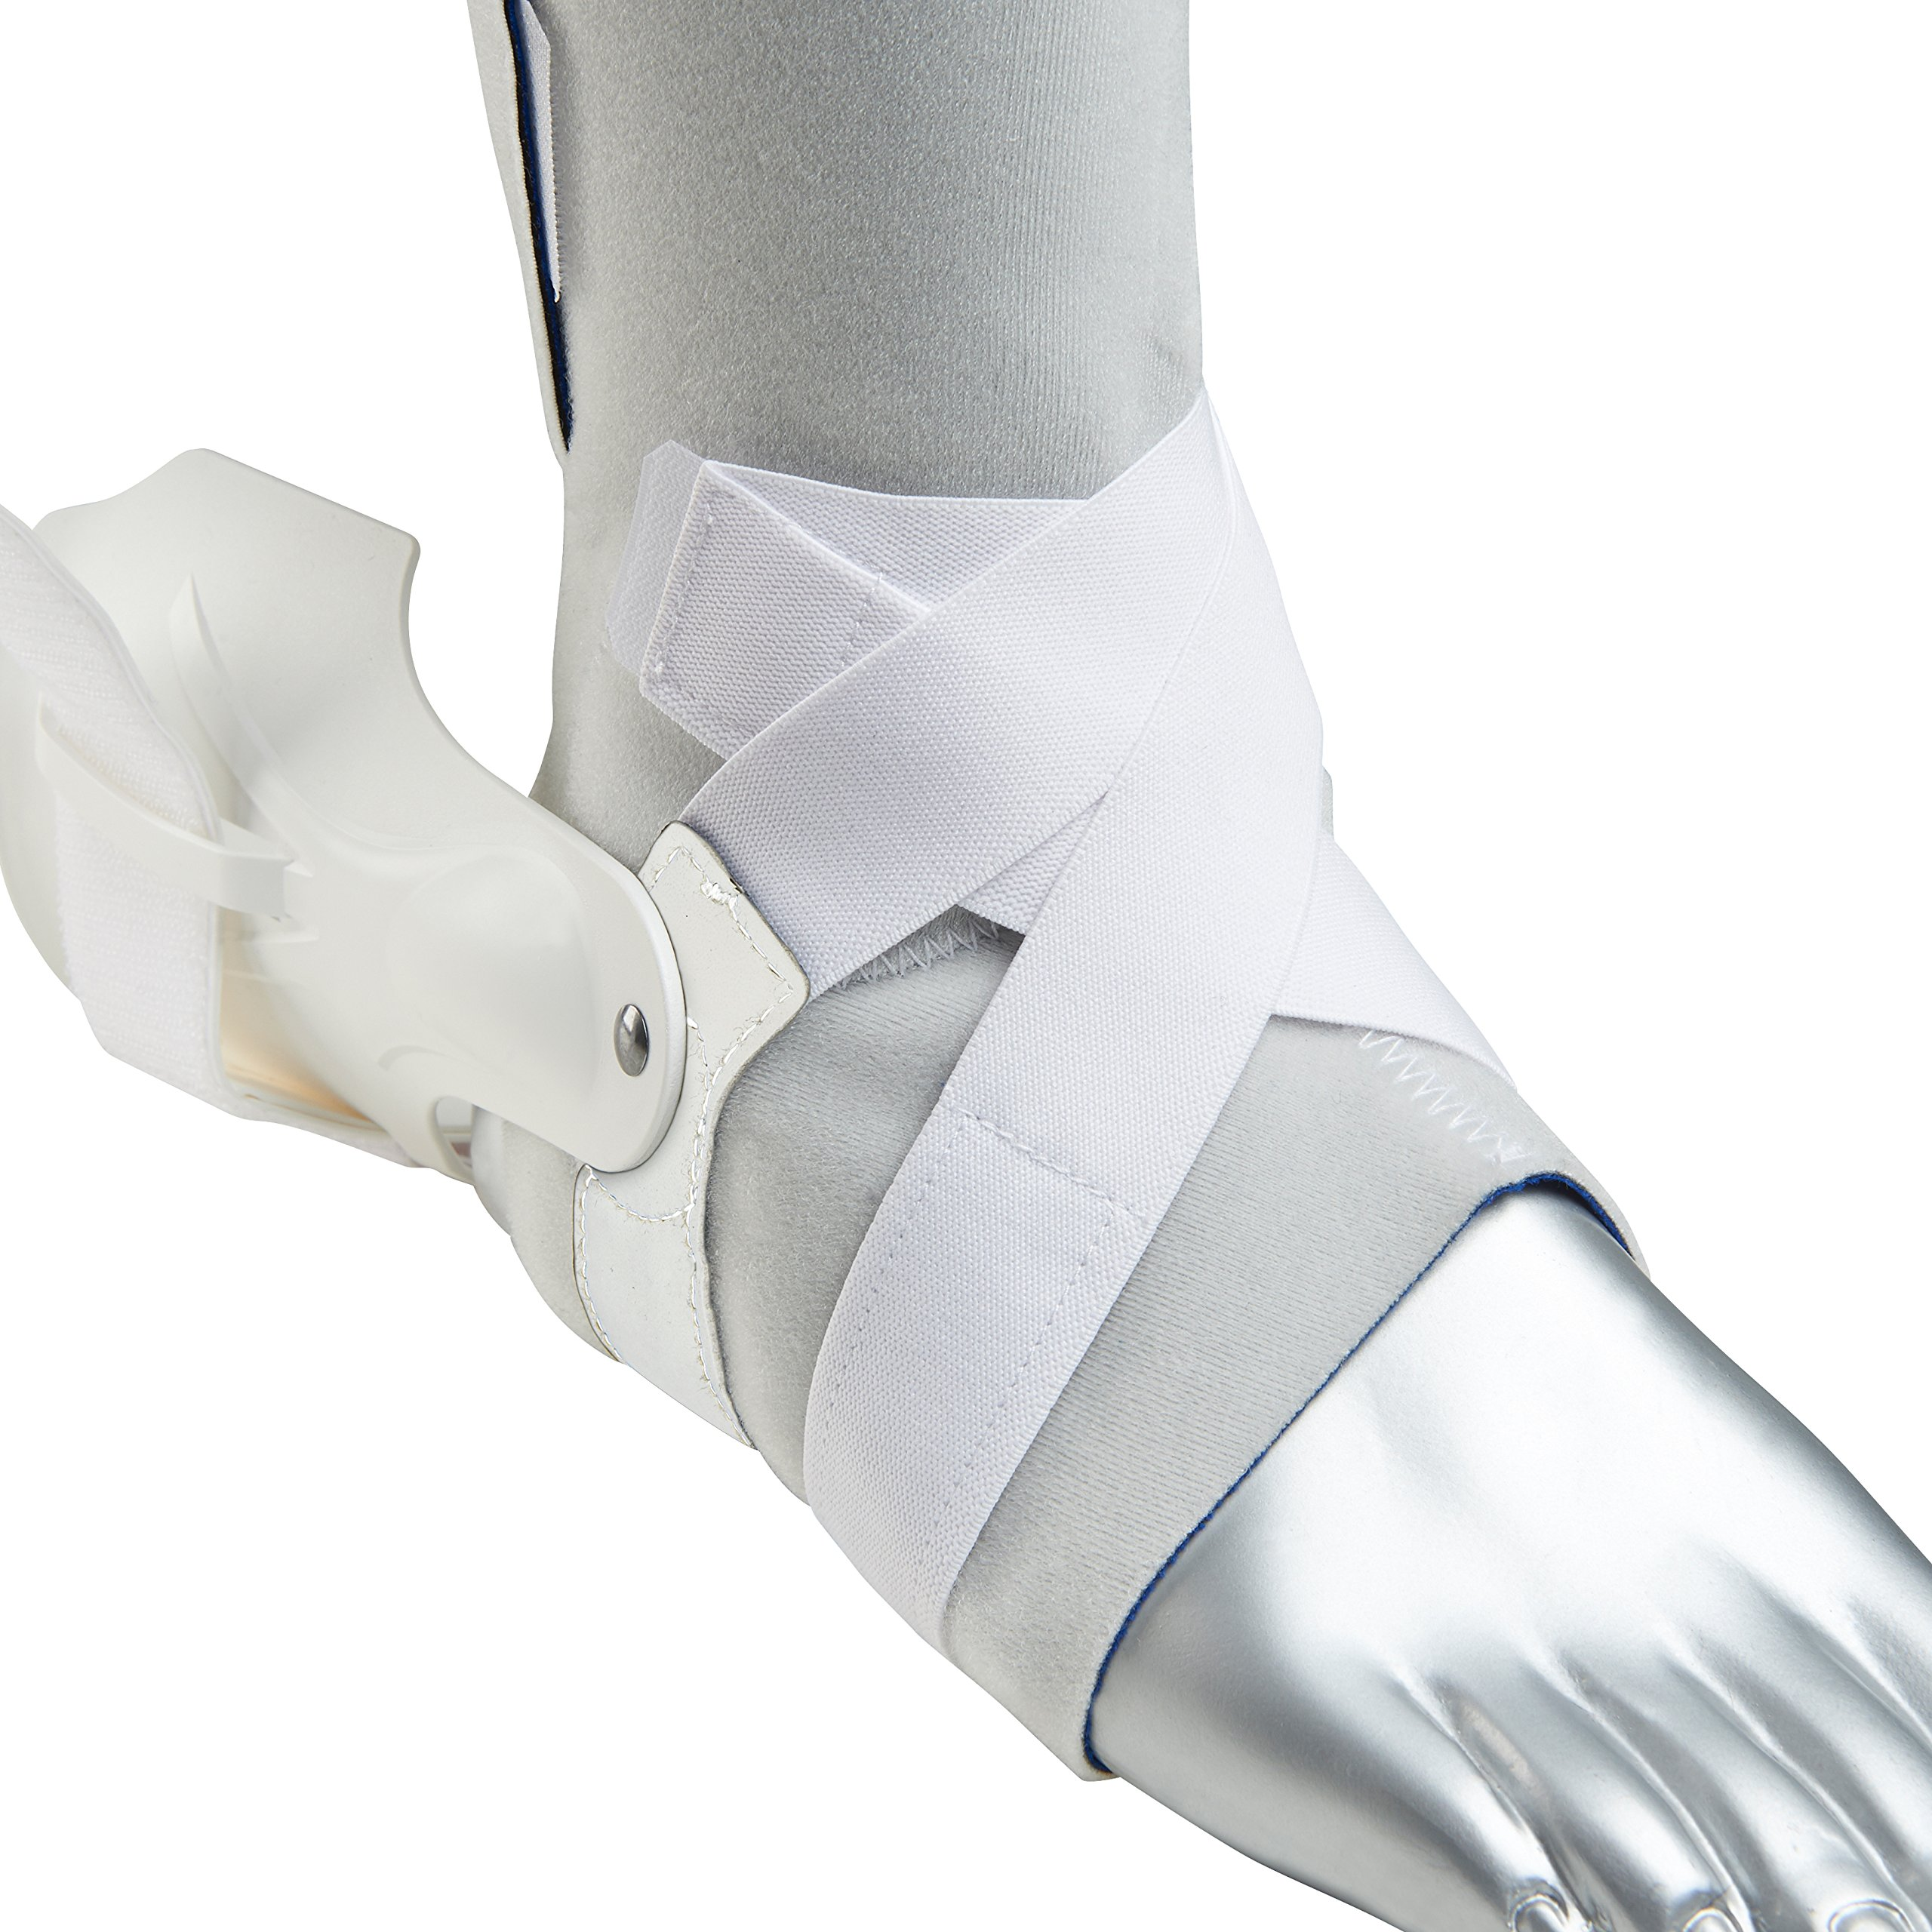 Zamst Ankle Brace Support Stabilizer: A2-DX Mens & Womens Sports Brace for Basketball, Soccer, Volleyball, Football & Baseball,White,Left,X-Large by Zamst (Image #3)